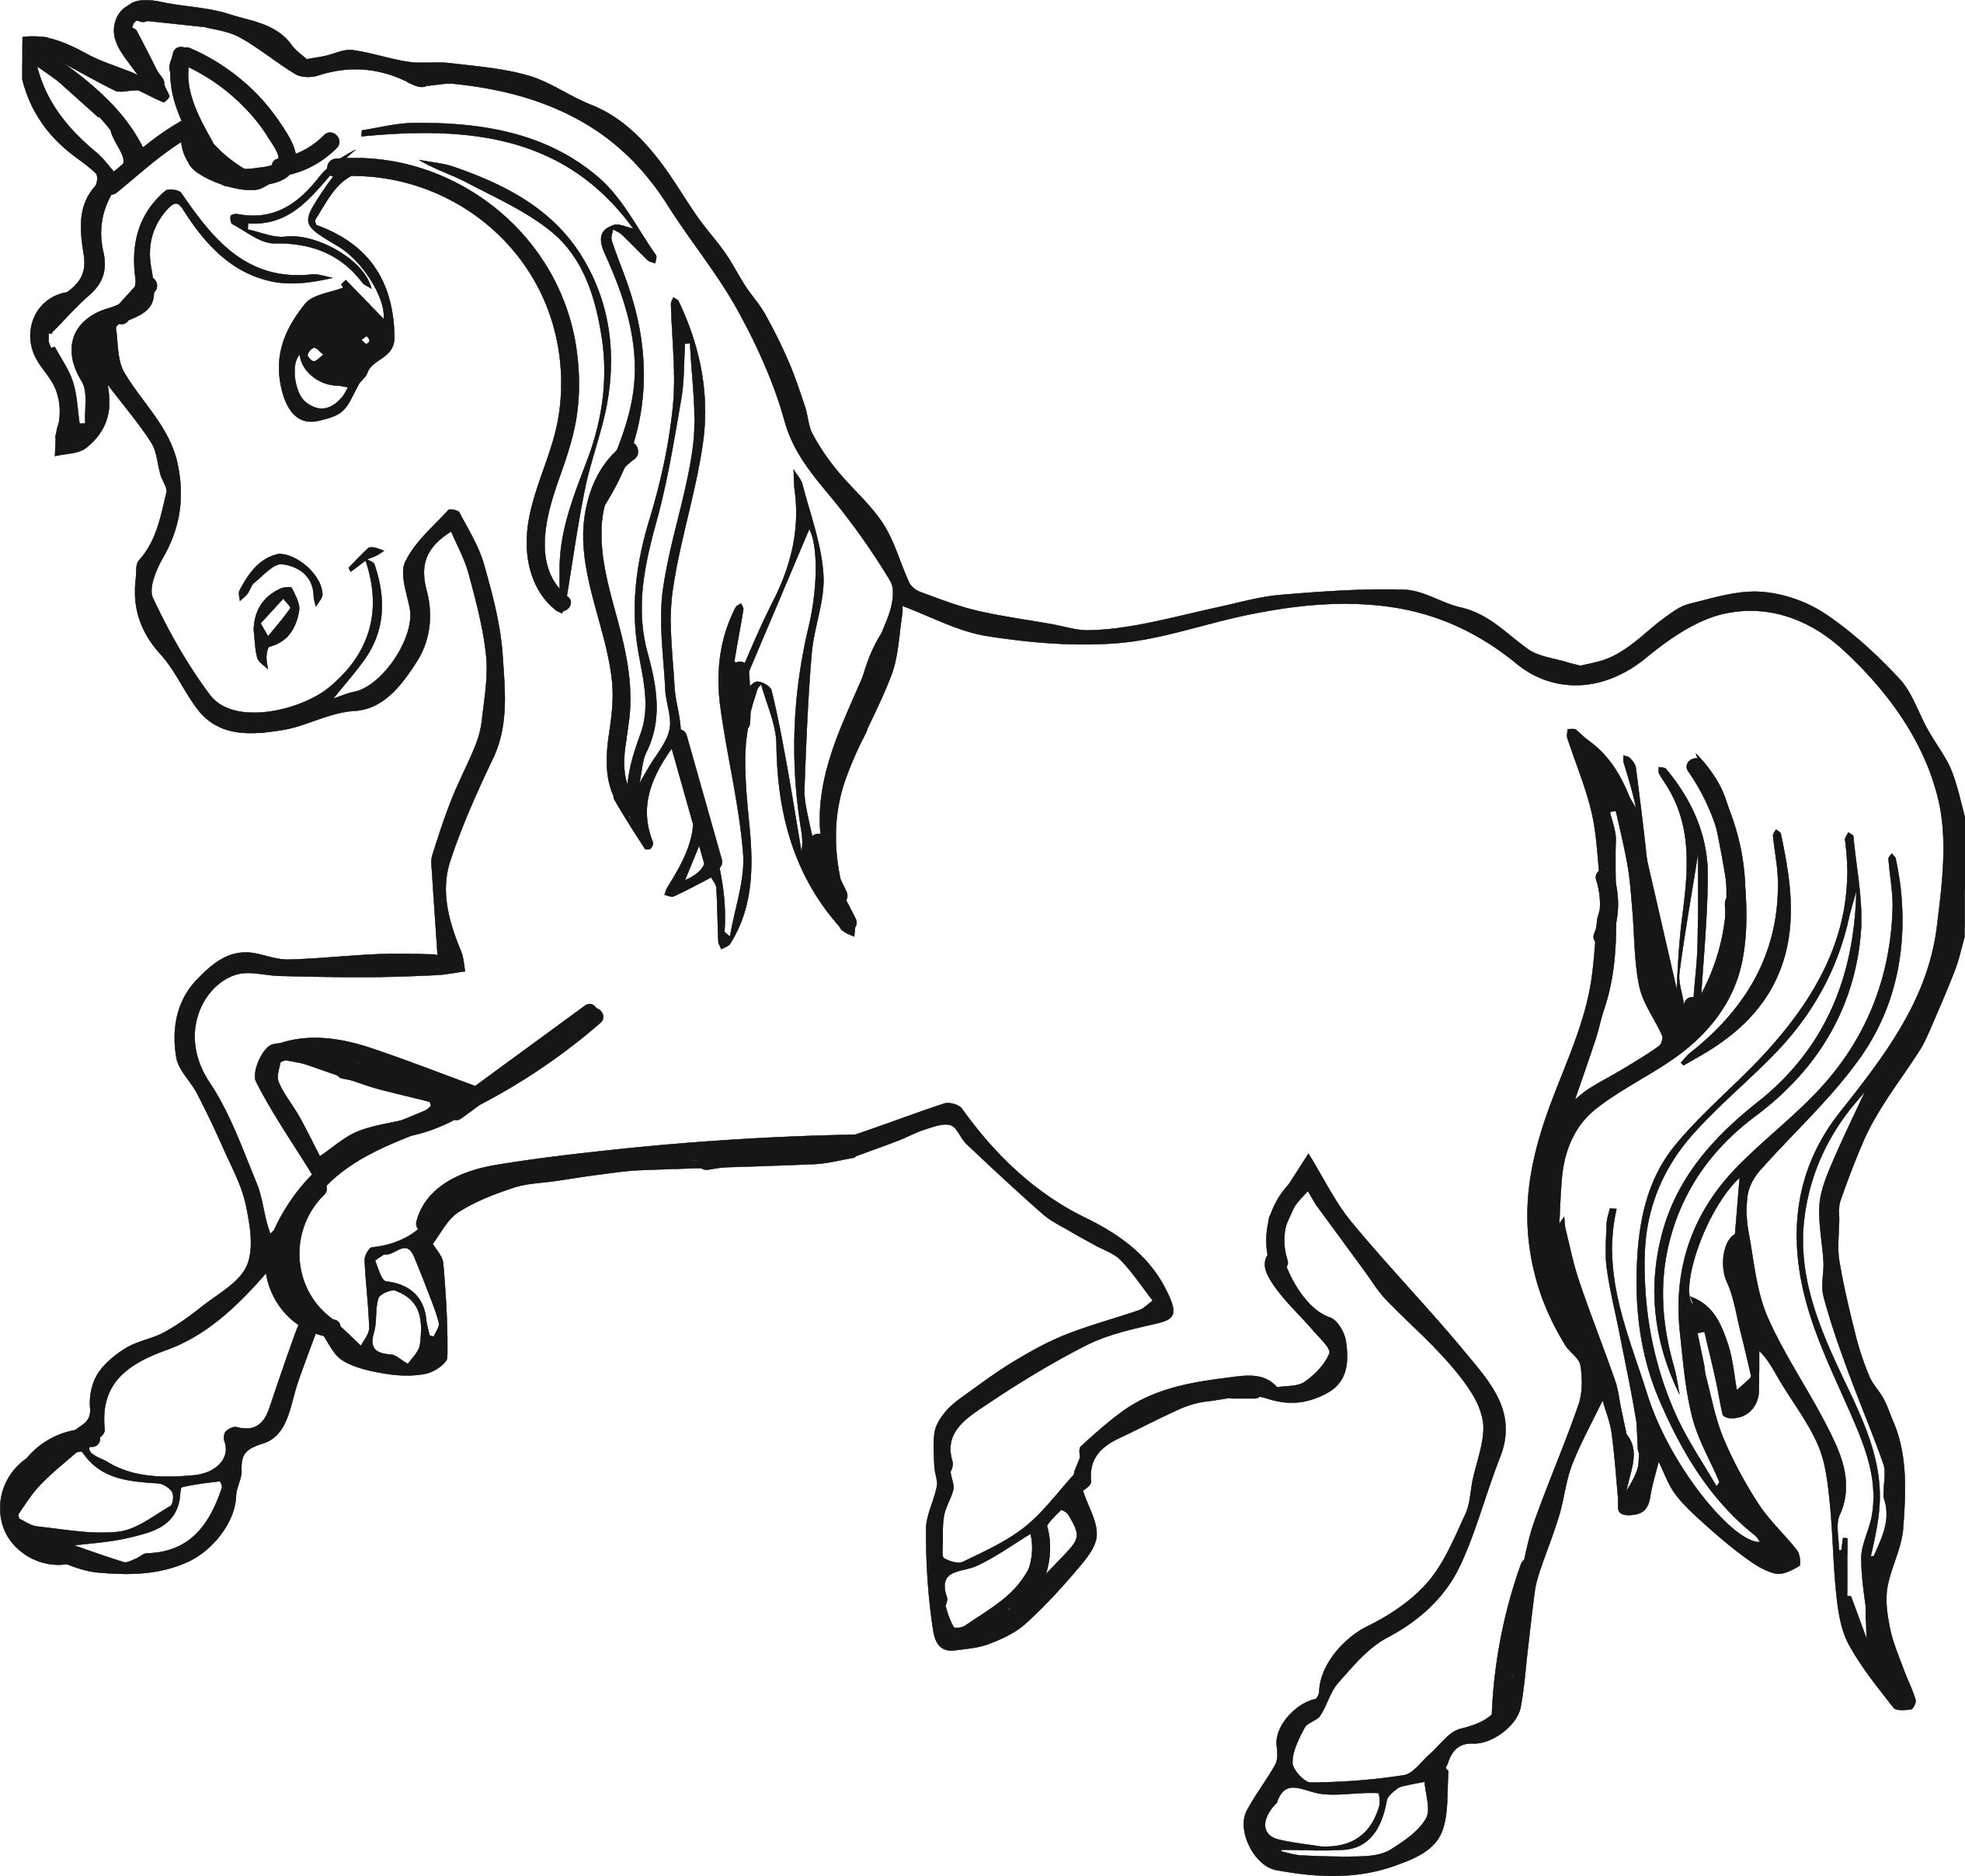 horse color sheet free horse coloring pages for adults kids cowgirl magazine horse color sheet